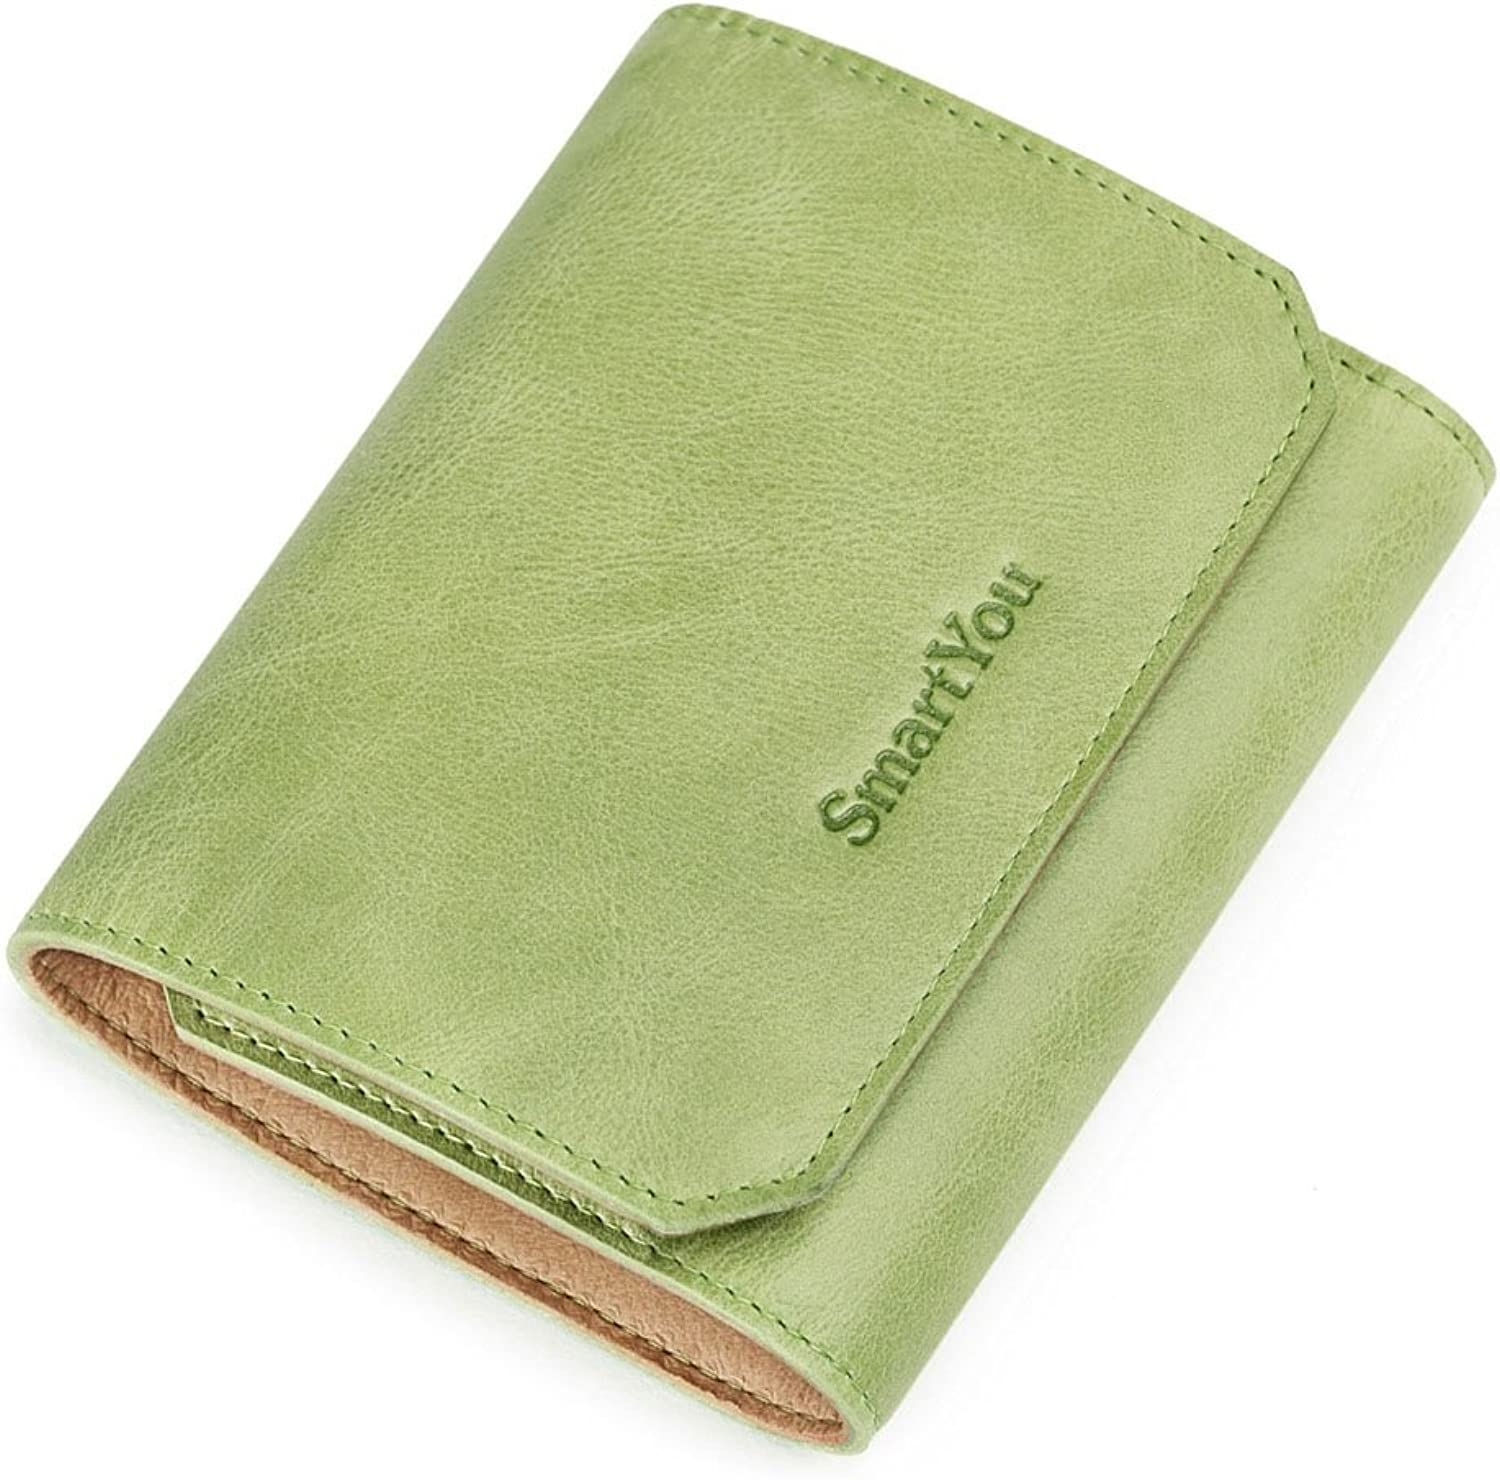 Sturdy Women's Leather Mini Zero Wallet Purse Hand Handbag Light Screens More Practical Large Capacity (color   Green)